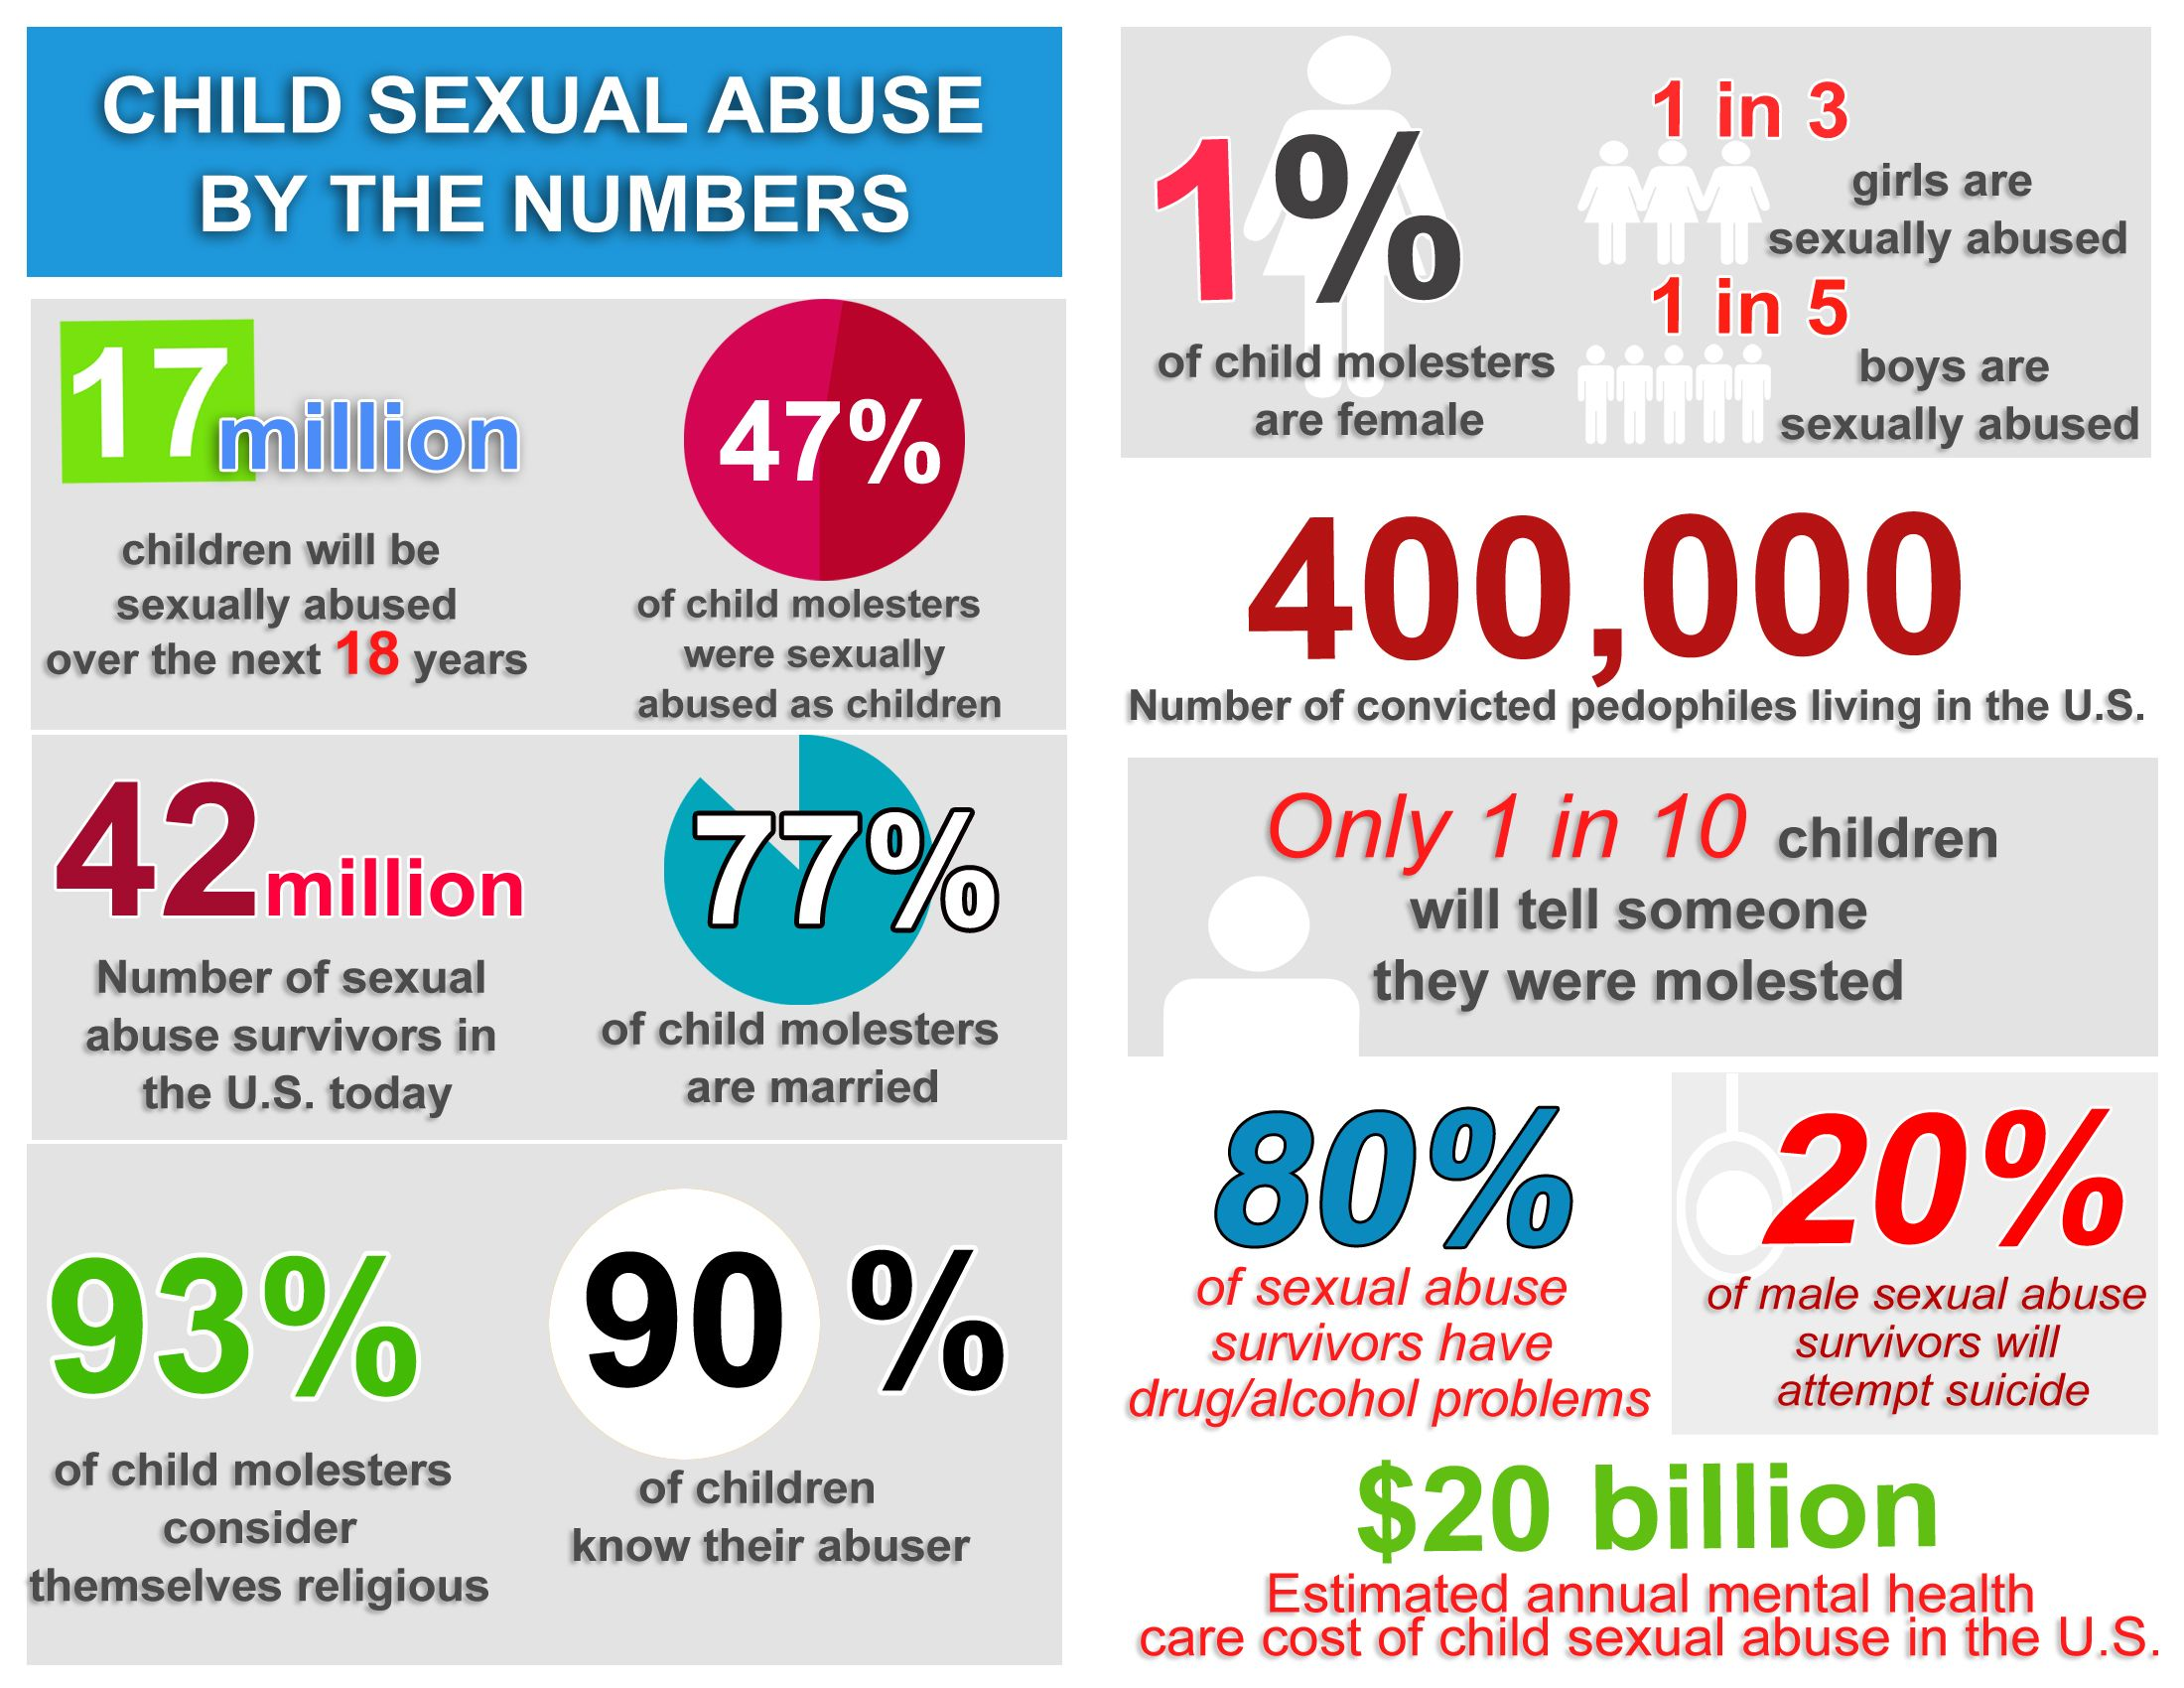 rates of sexual abuse